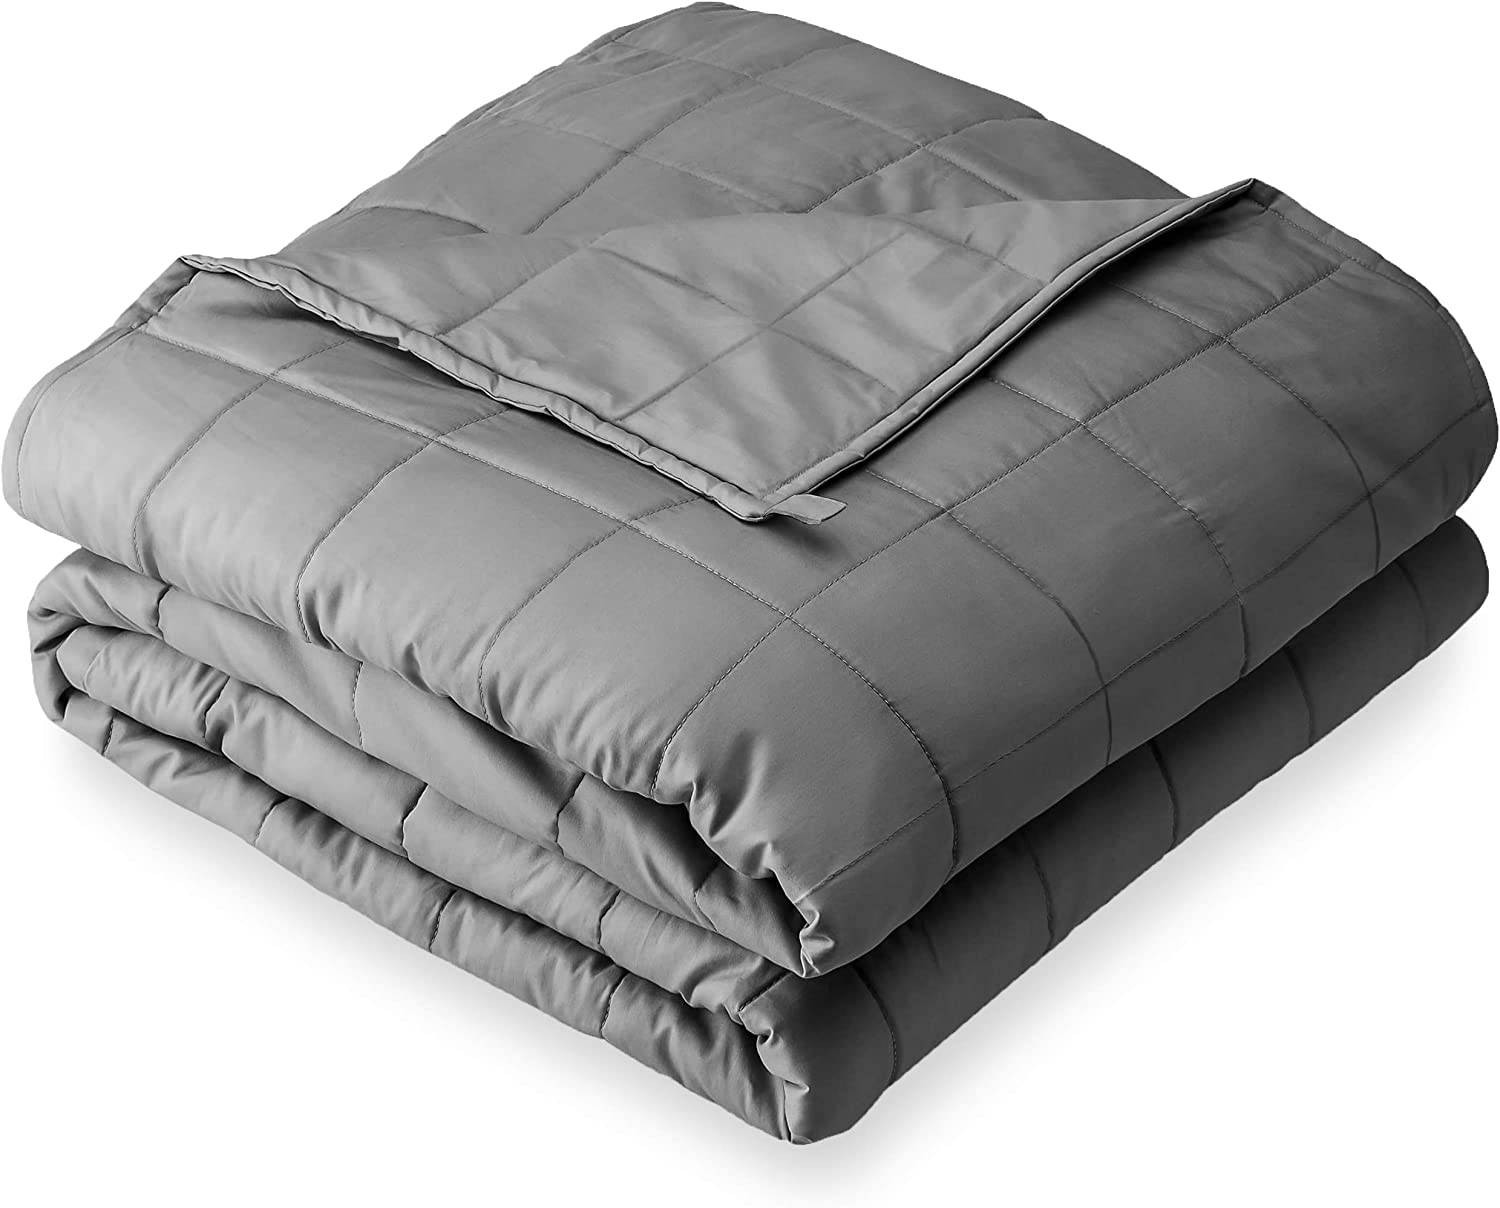 """Bare Home Weighted Blanket for Adults 22lb (60"""" x 80"""") - All-Natural 100% Cotton - Premium Heavy Blanket Nontoxic Glass Beads (Grey, 60""""x80"""")"""